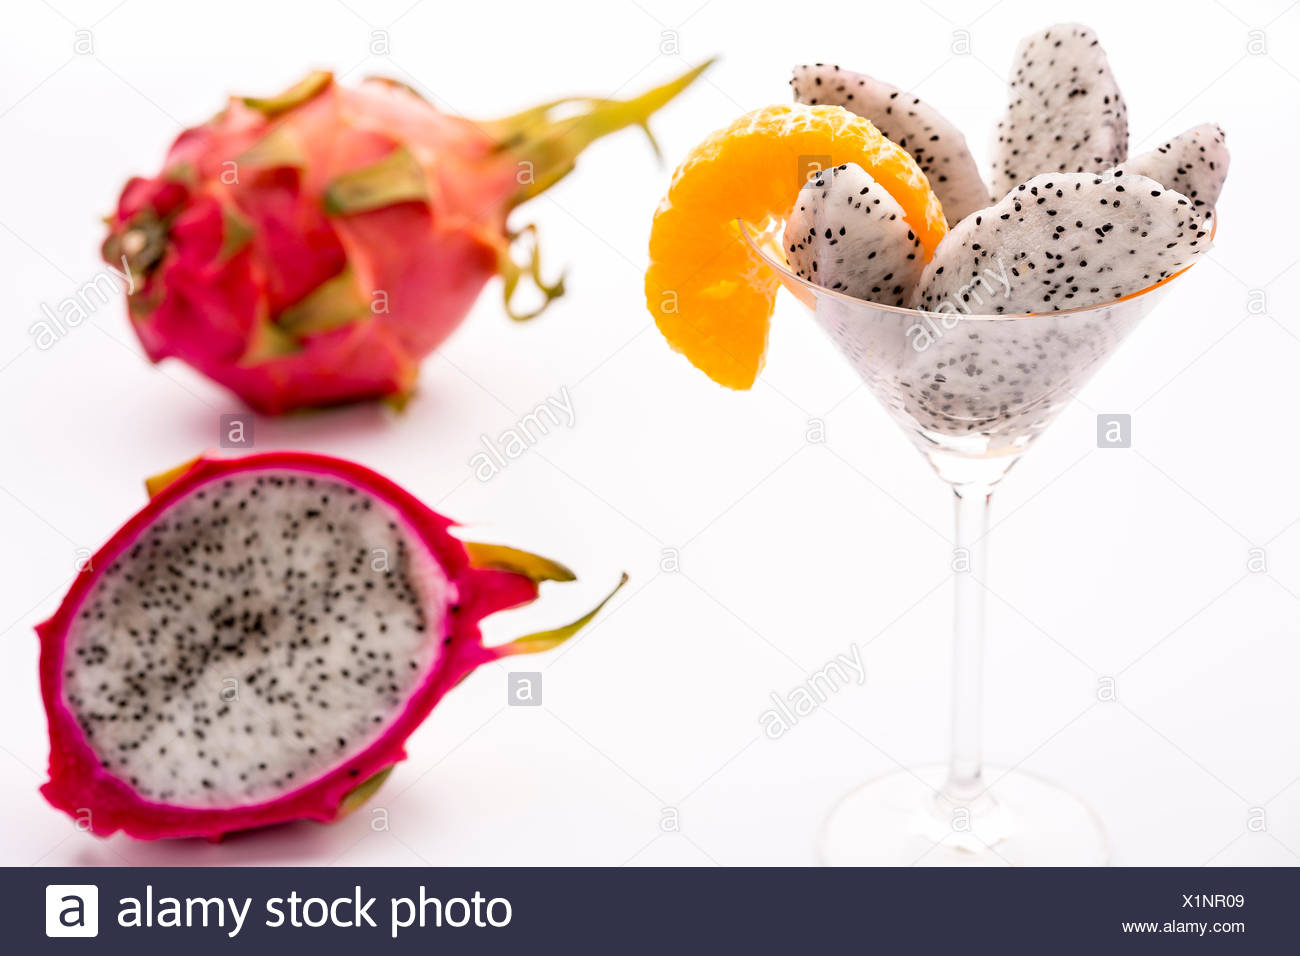 The juicy pulp of the Pitahaya blanca presented in a glass and decorated with a mandarine slice. This exotic fruit is also called strawberry pear, nanettika fruit or pitaya. - Stock Image